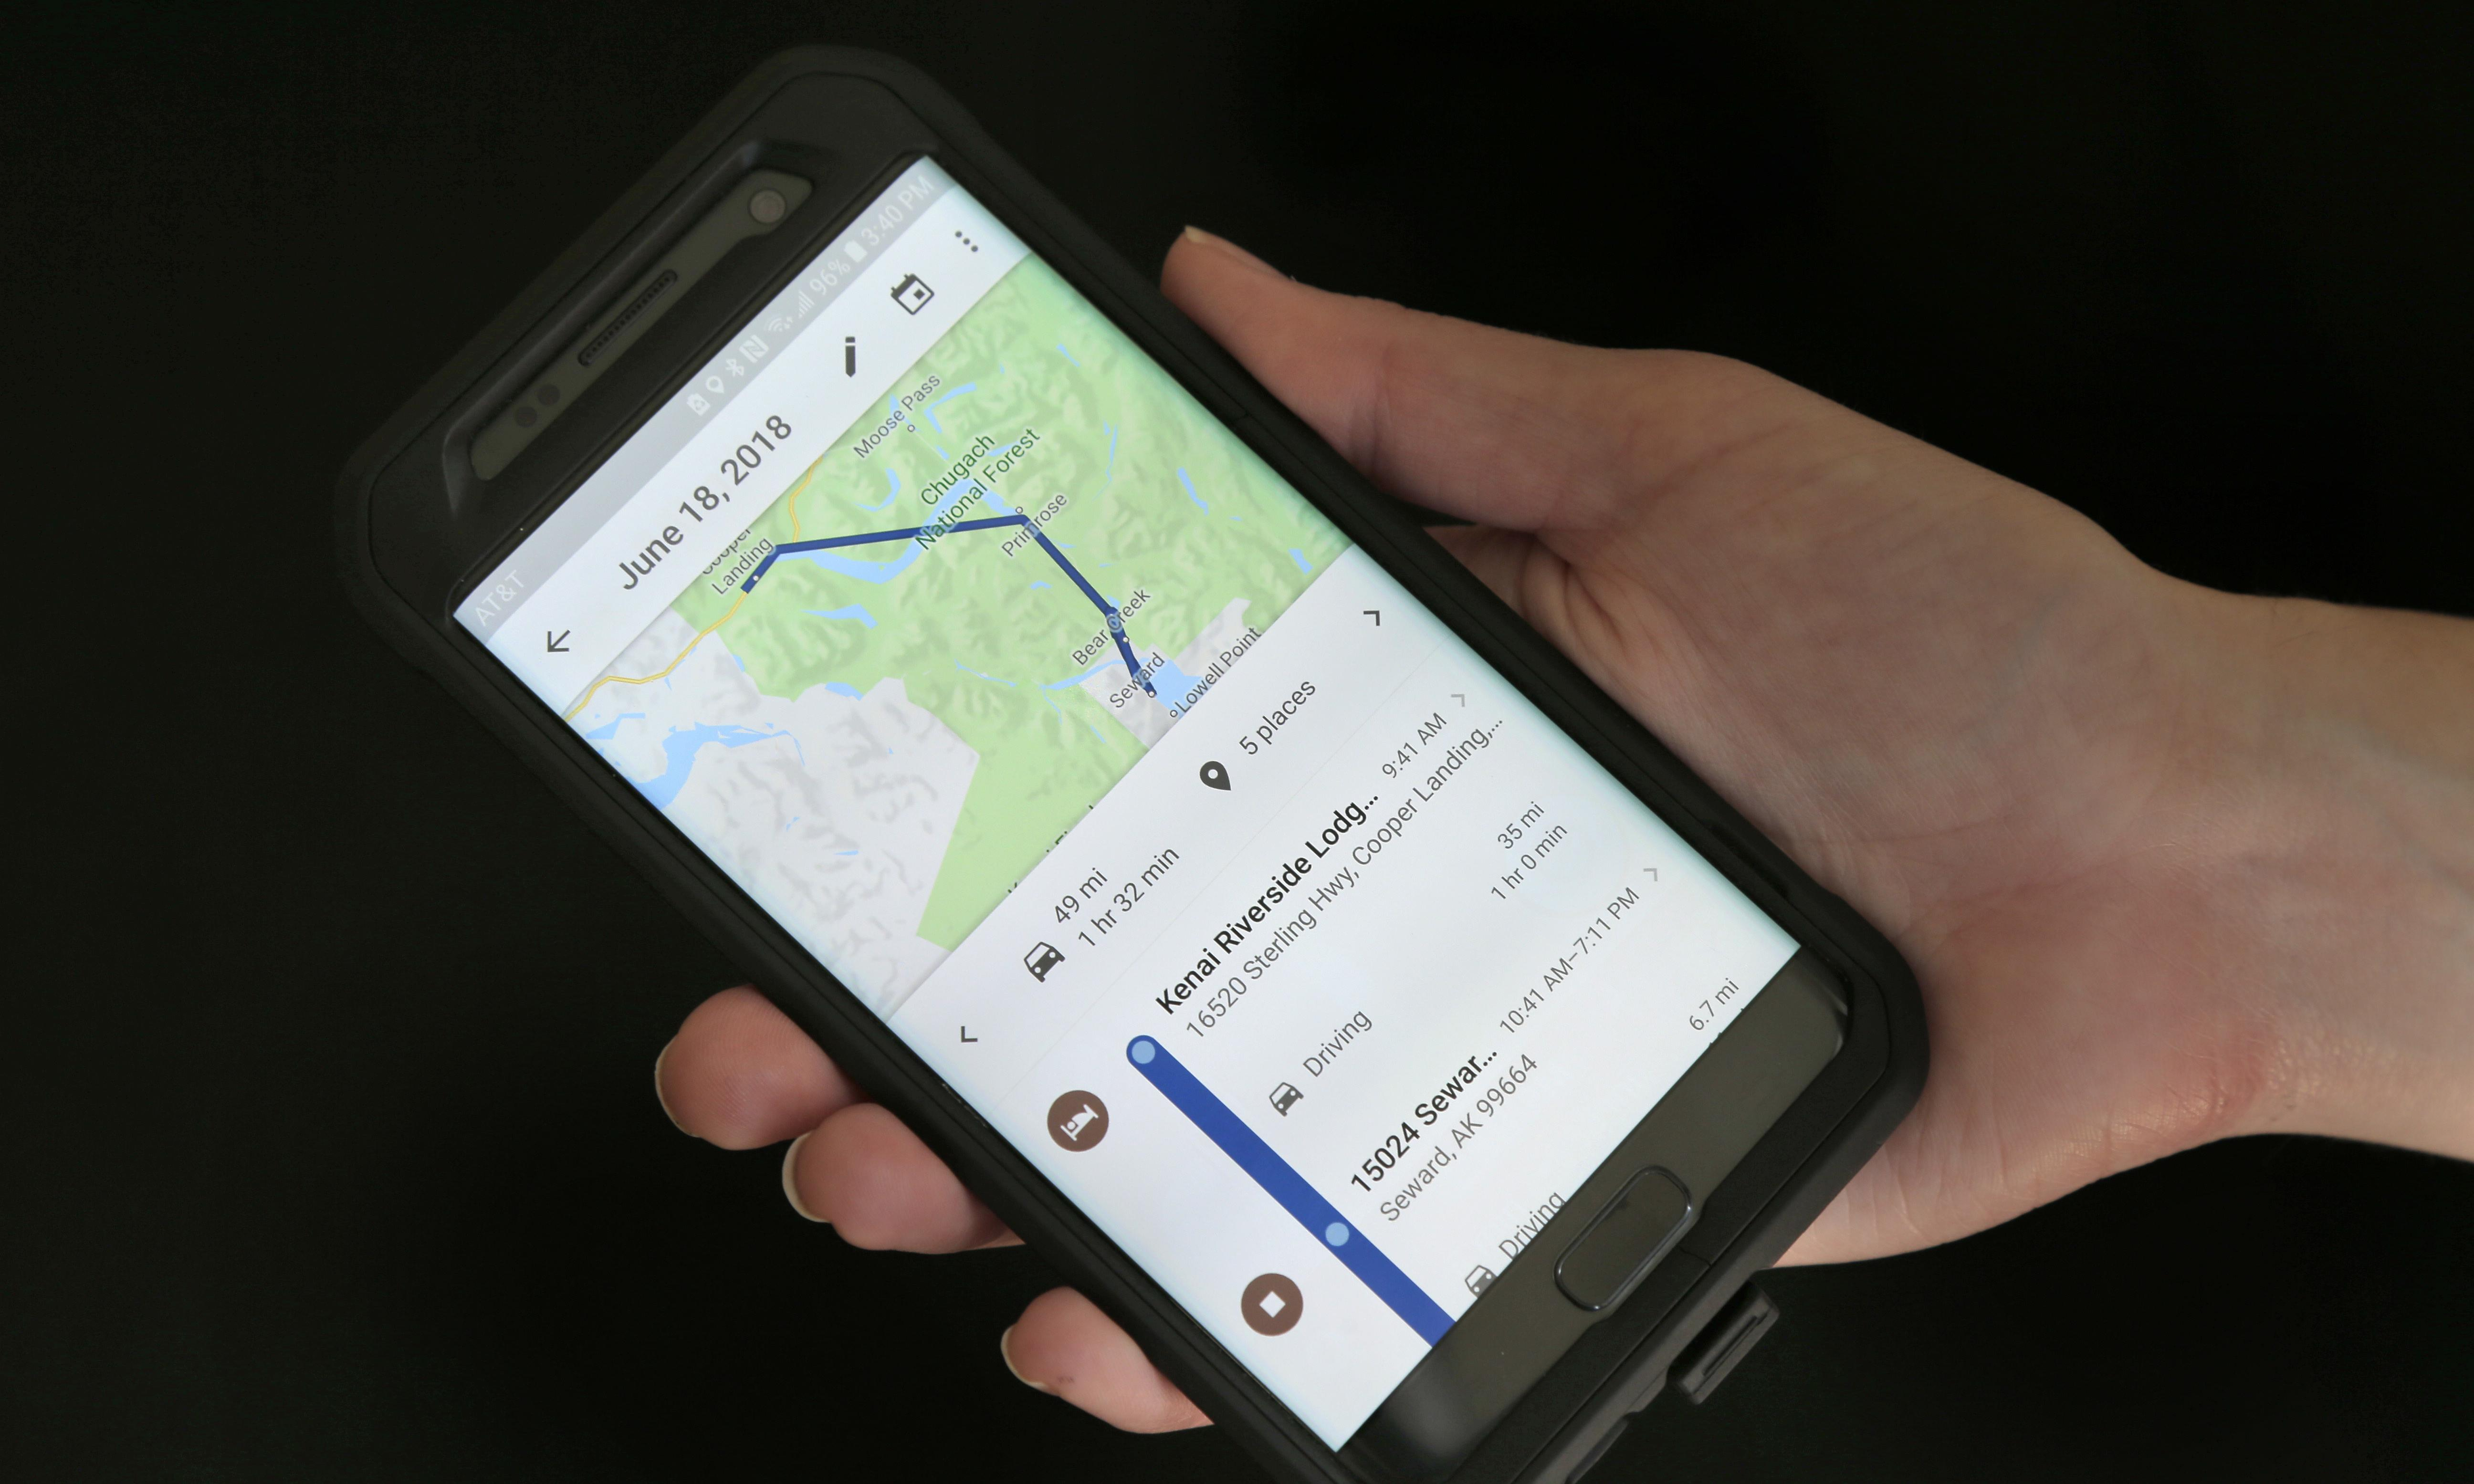 Tired of Google following you? It is now easier to clear location data